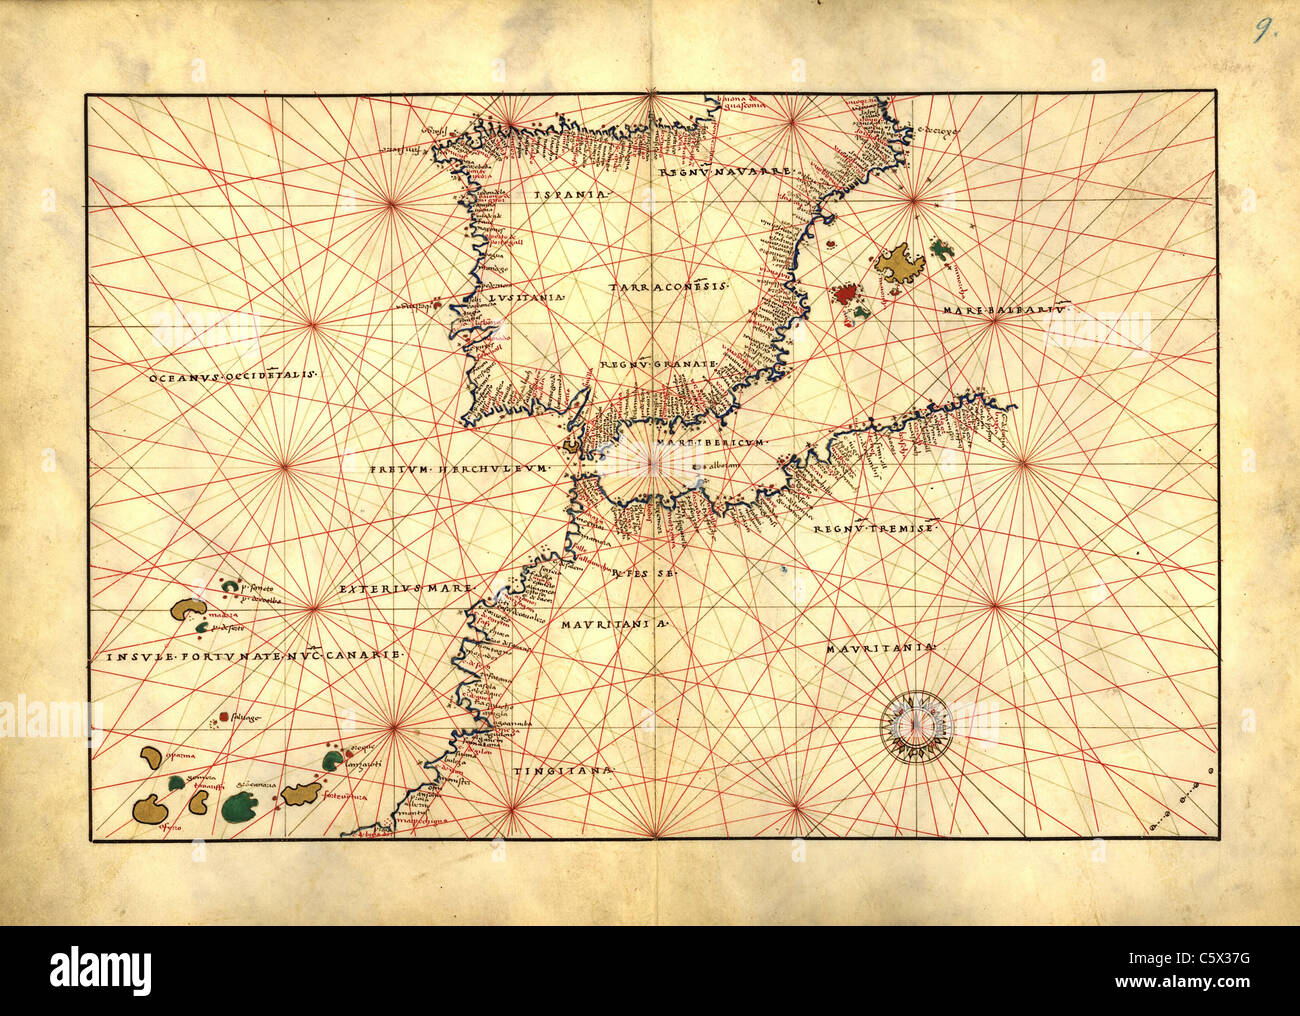 Straits of Gibraltar with Northwest Africa and Spain - Antiquarian Map or Portolan Chart from 16th Century Portolan Stock Photo